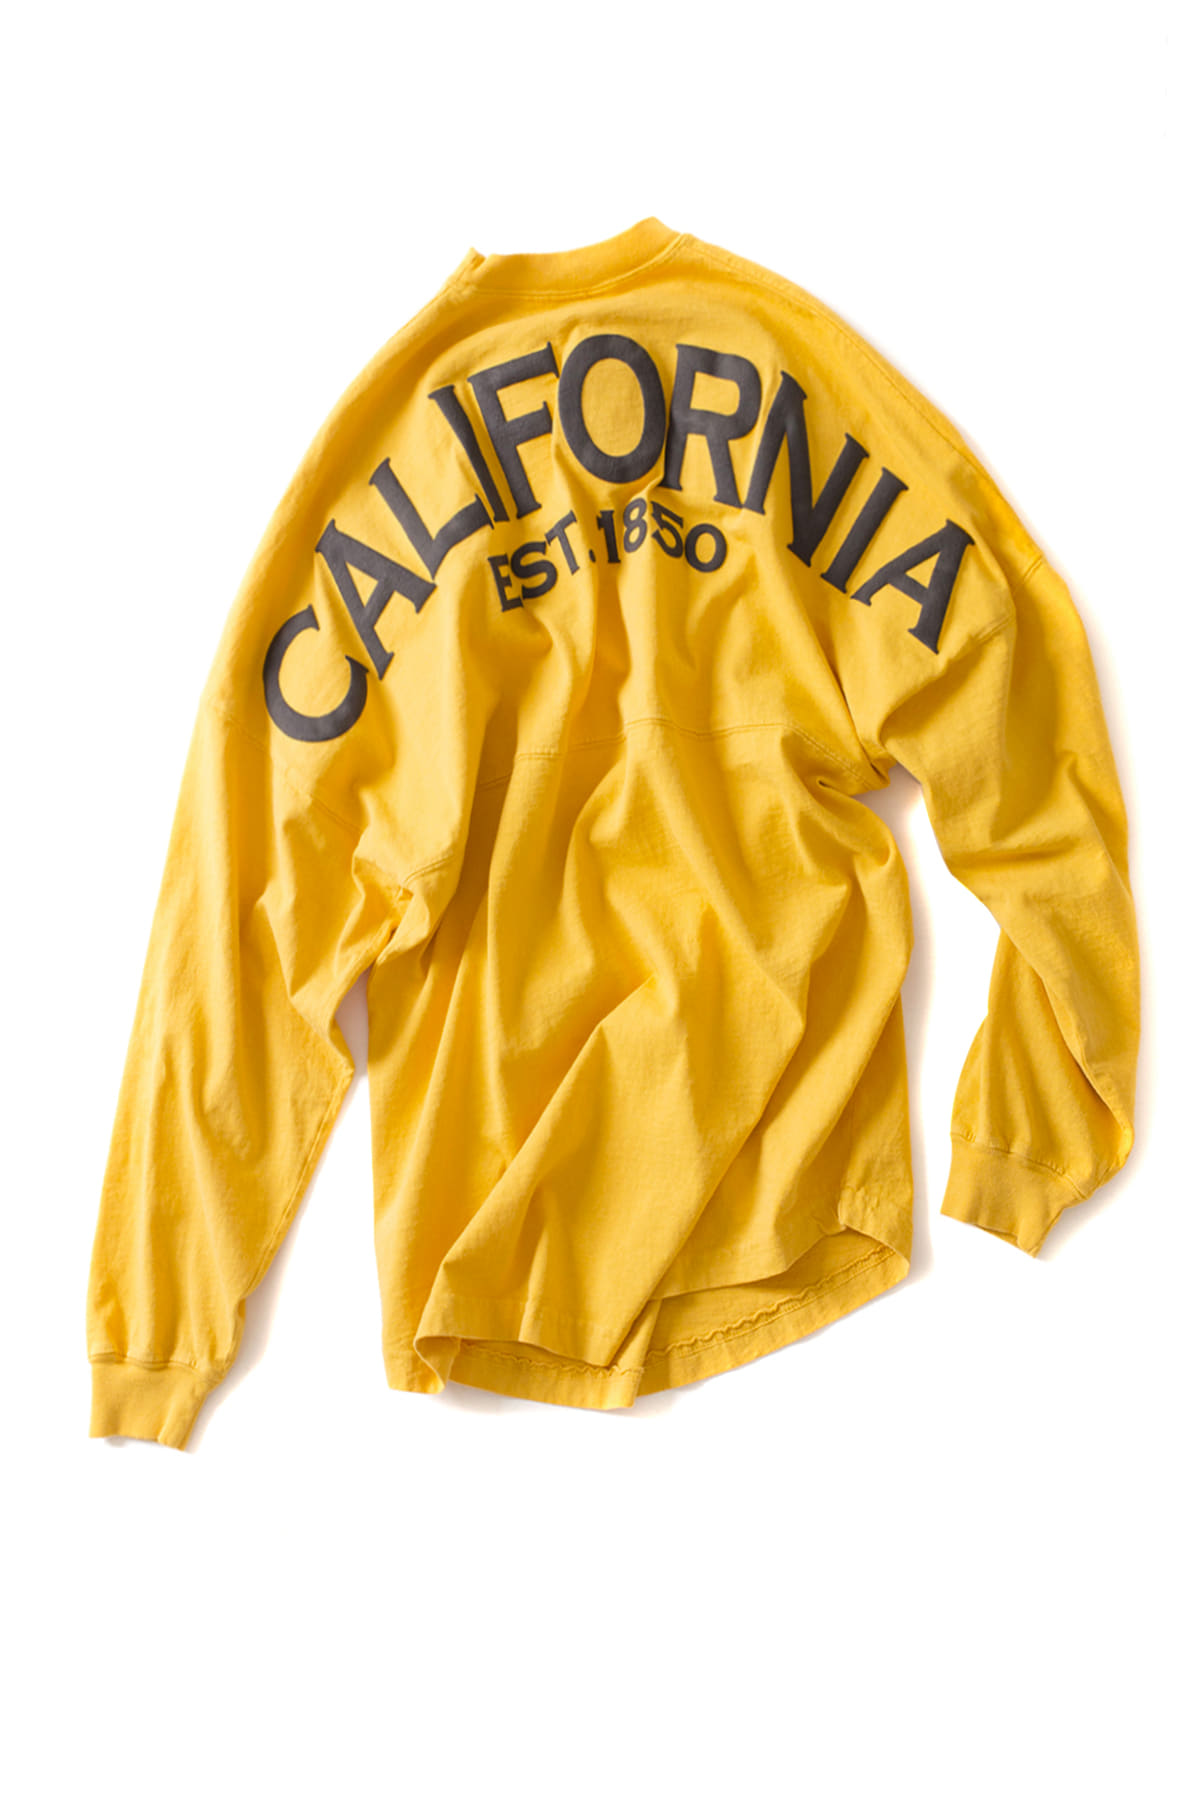 Spirit Jersey : California L/S Tee (Yellow)